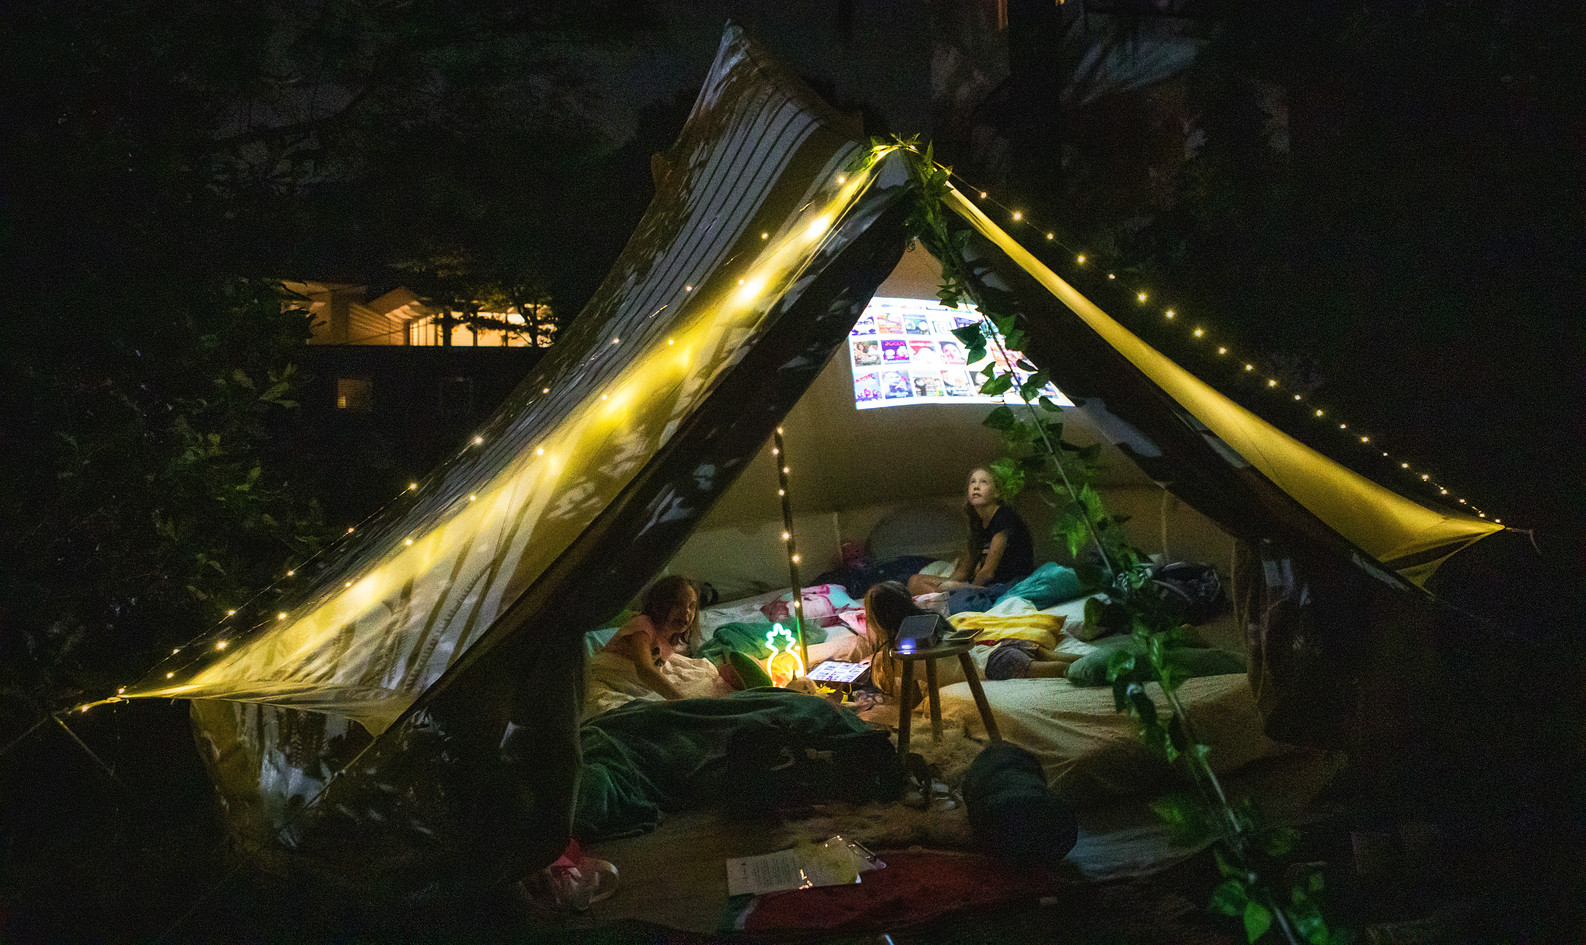 Night Time Movie Tent!